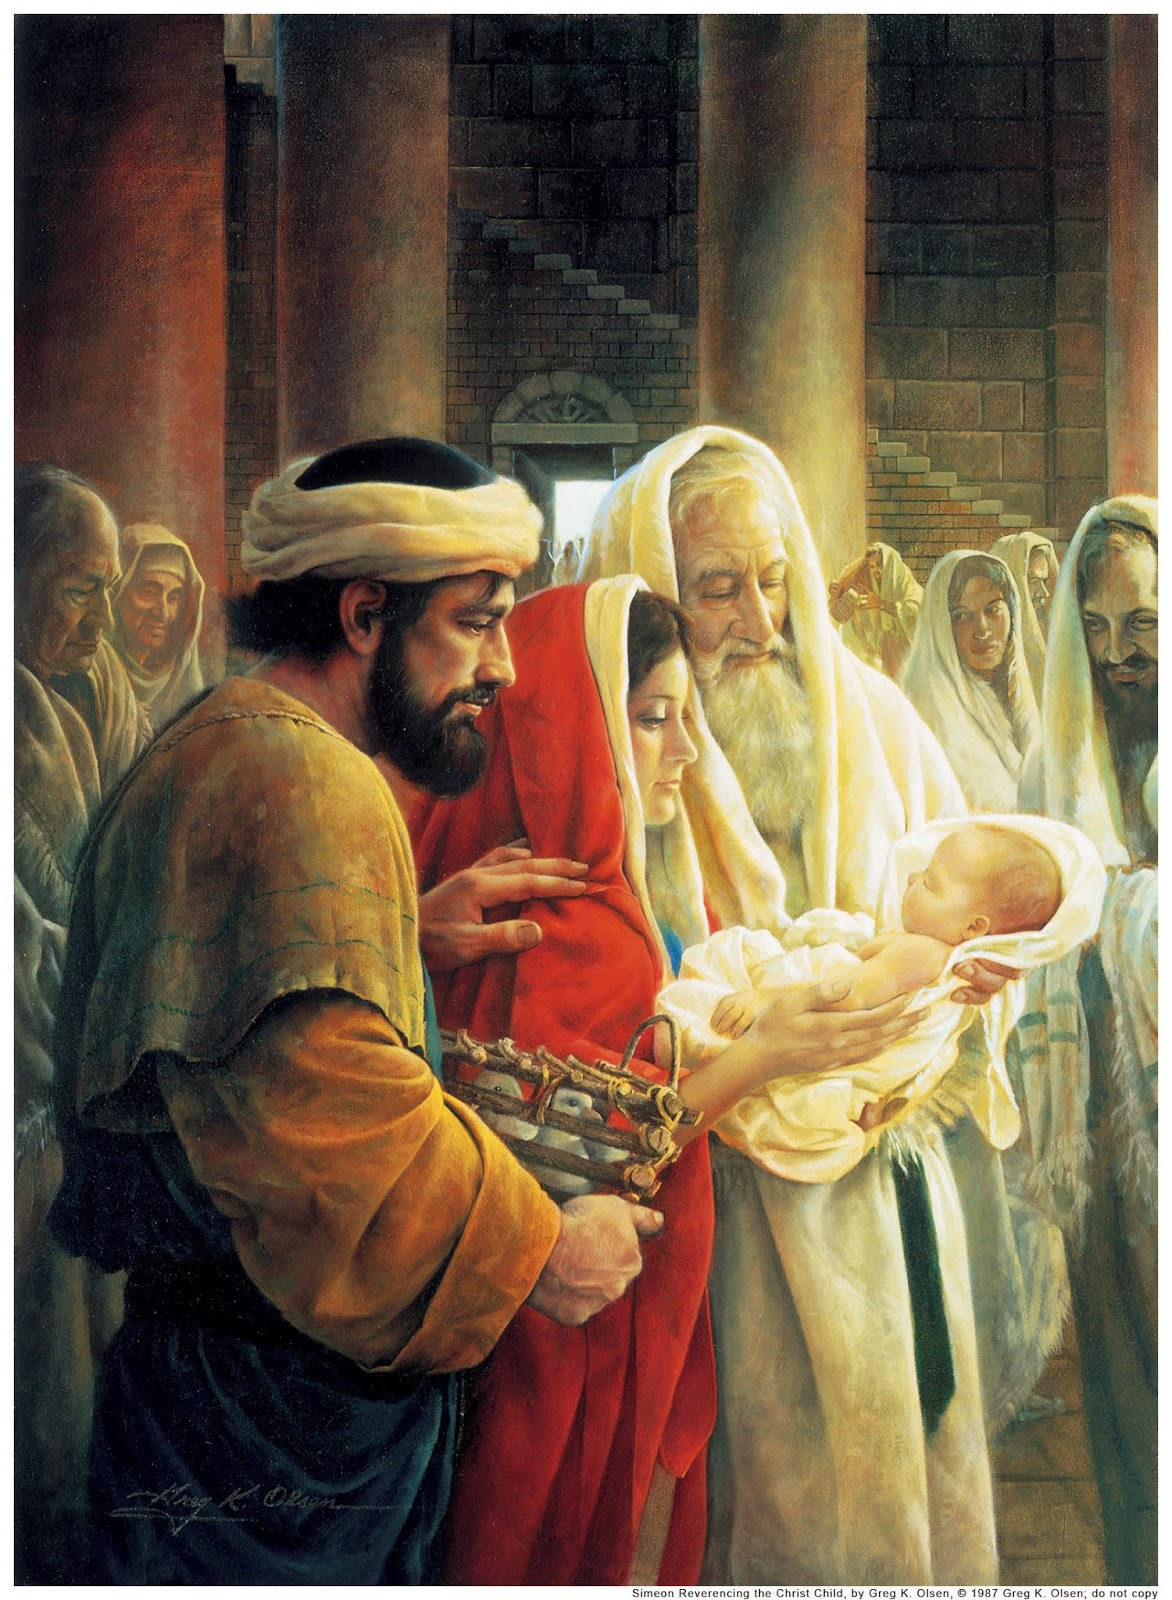 The Holy Spirit moved old Simeon, a 'saint' in Jerusalem, to visit the temple, where eight-day old Jesus was brought by Mary and Joseph to be circumcised according to the law.